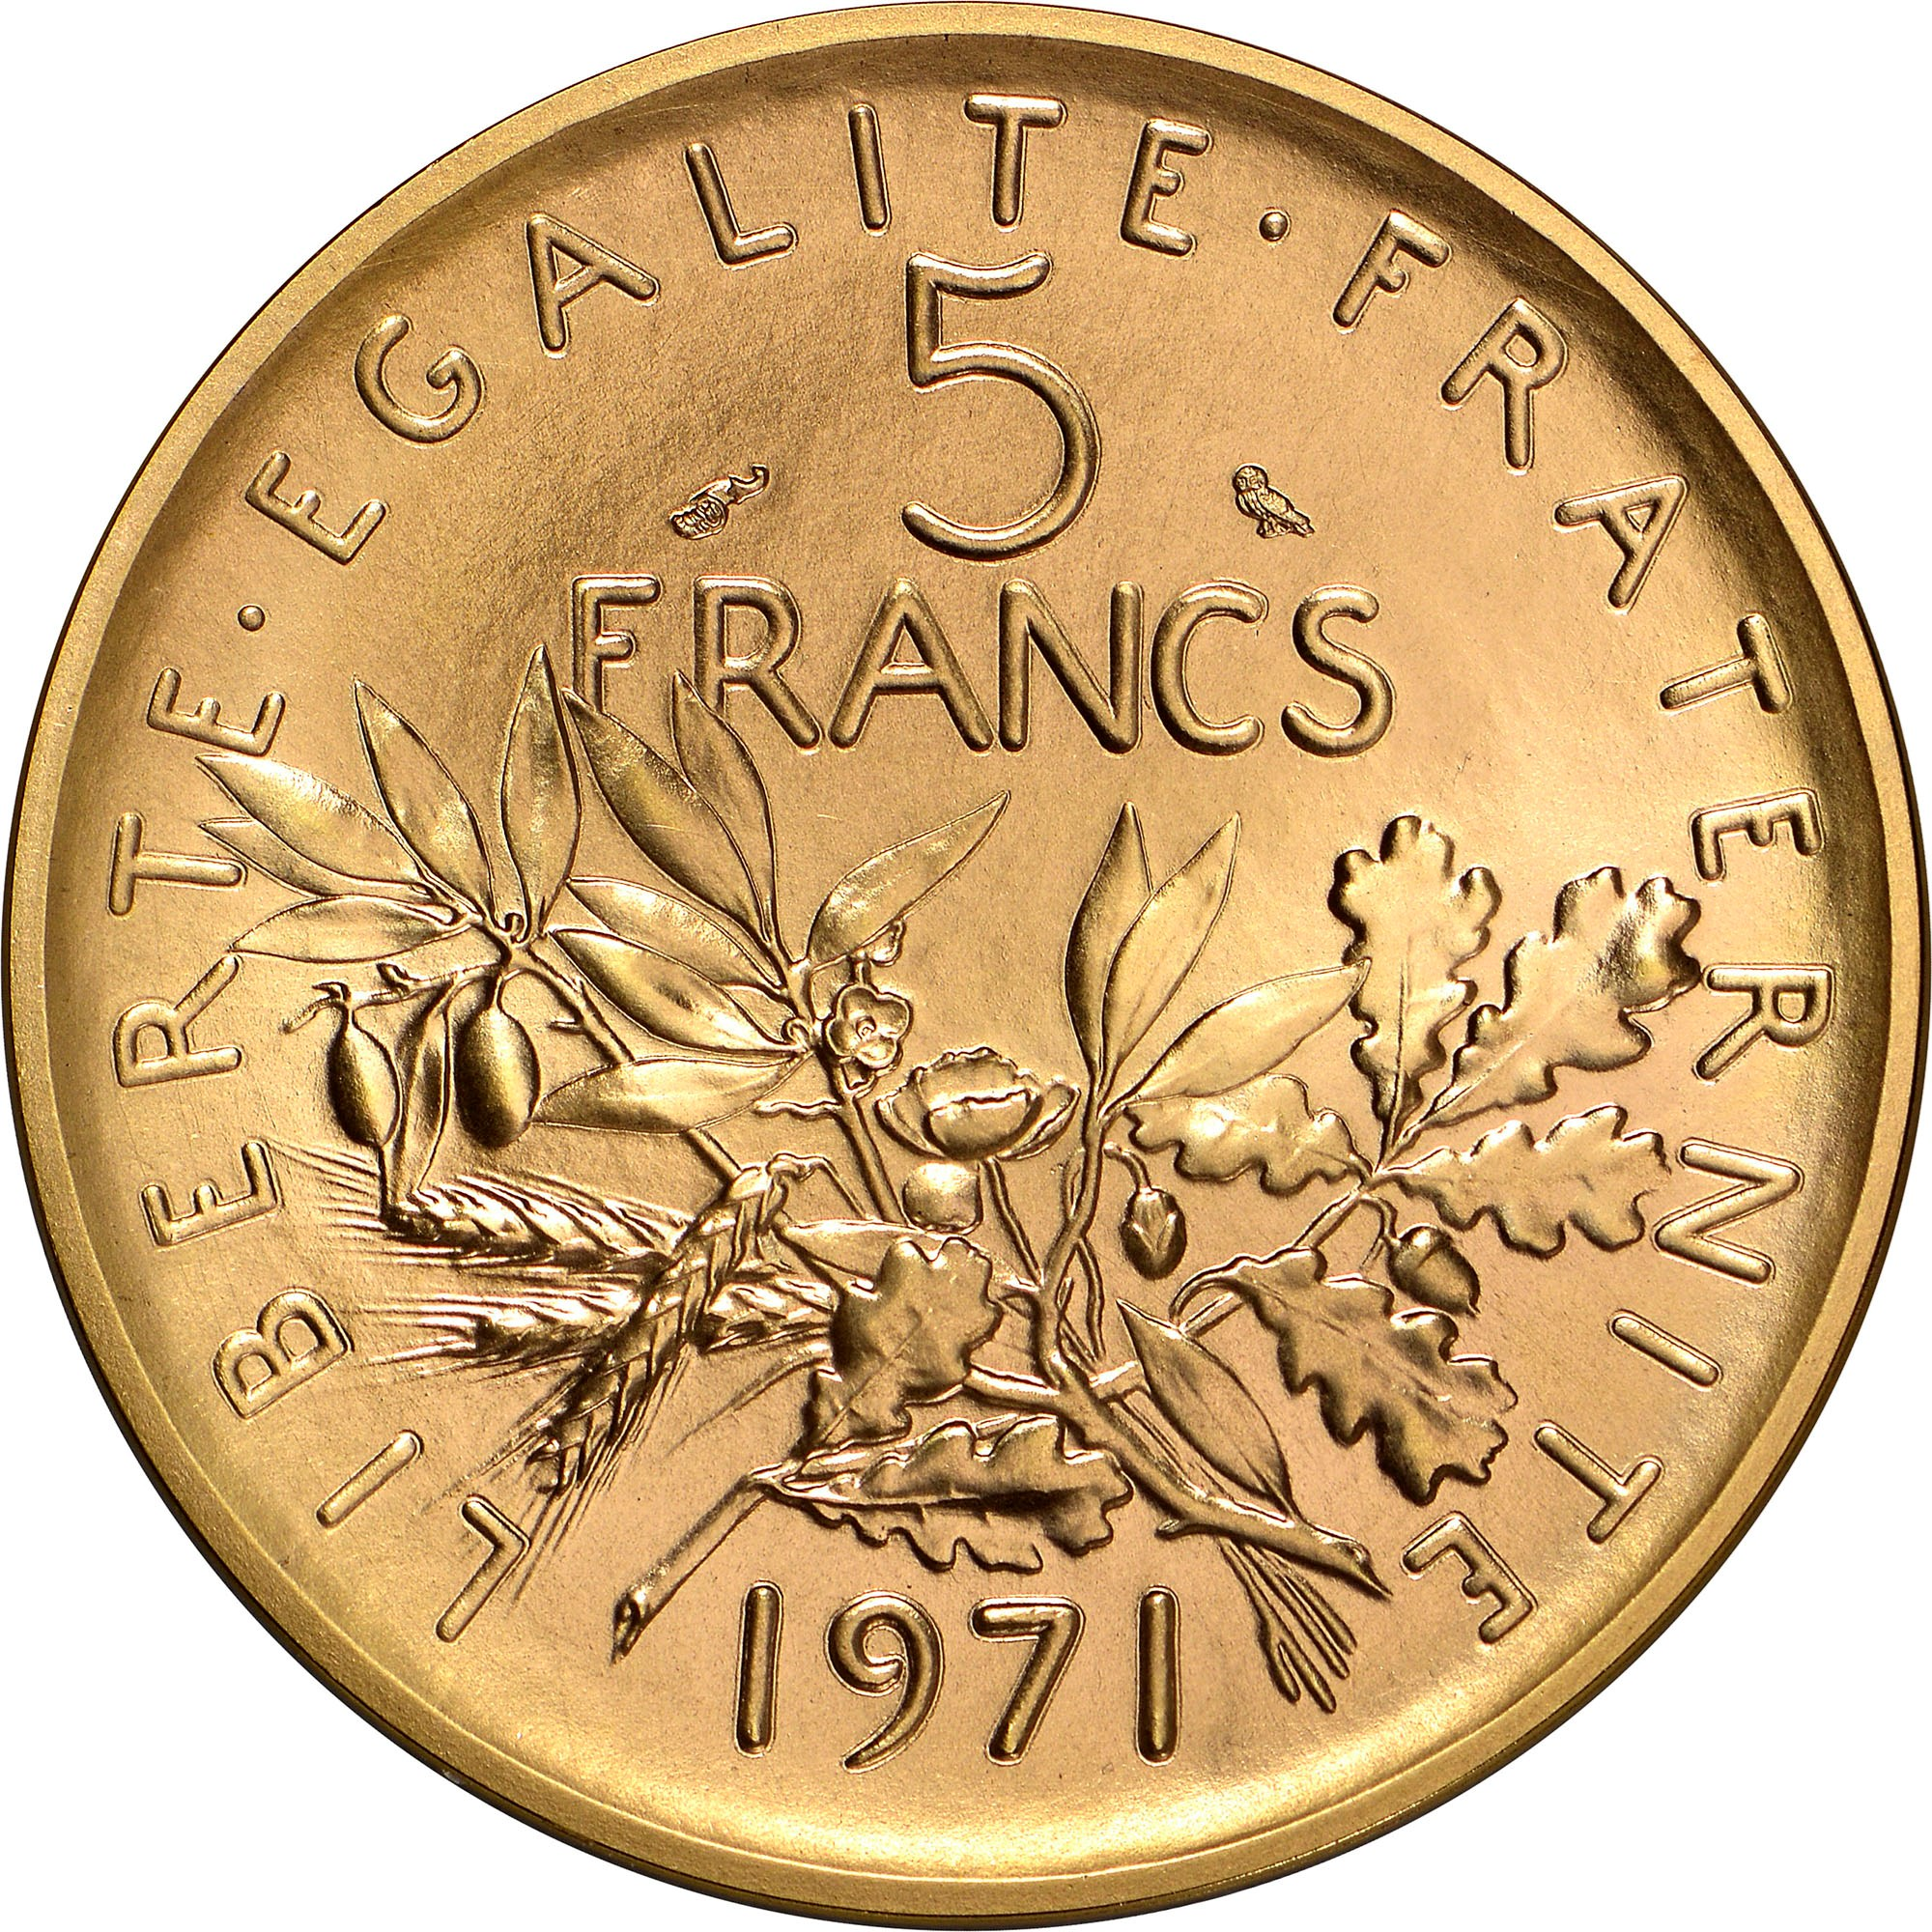 5 Francs world coins Africa 10 Francs 1970/'s shiny beautiful Lot of 9 Vintage West African States coins Francs 1 Franc